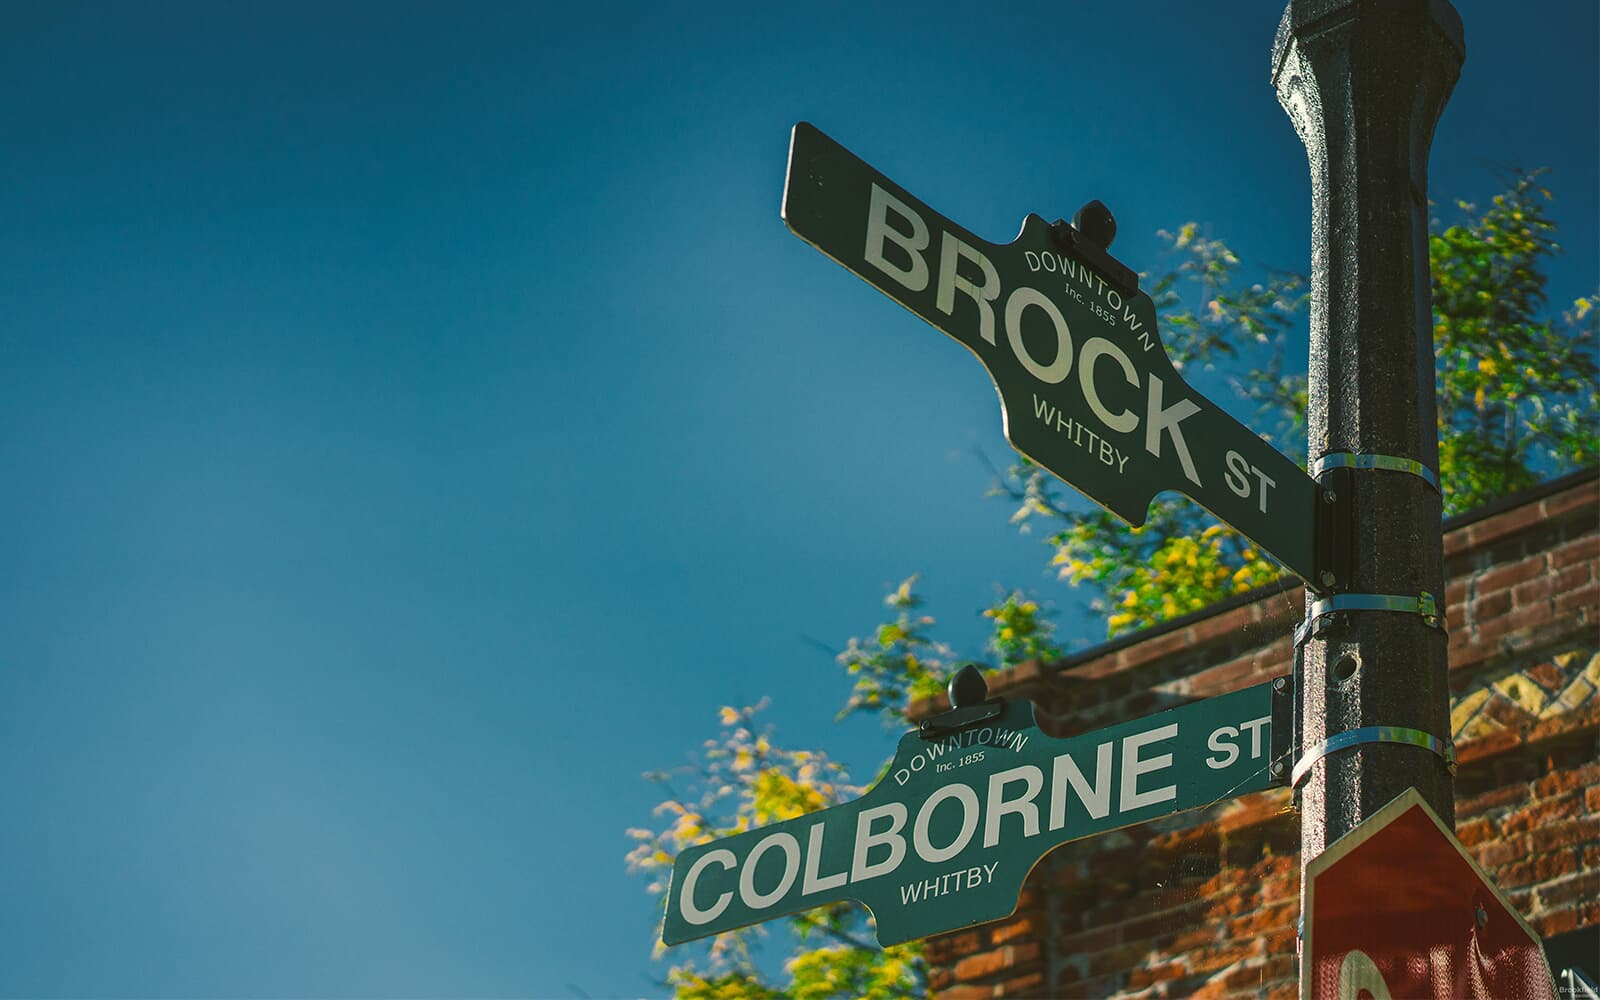 Brock and Colborne Street Signs in Downtown Whitby, ON